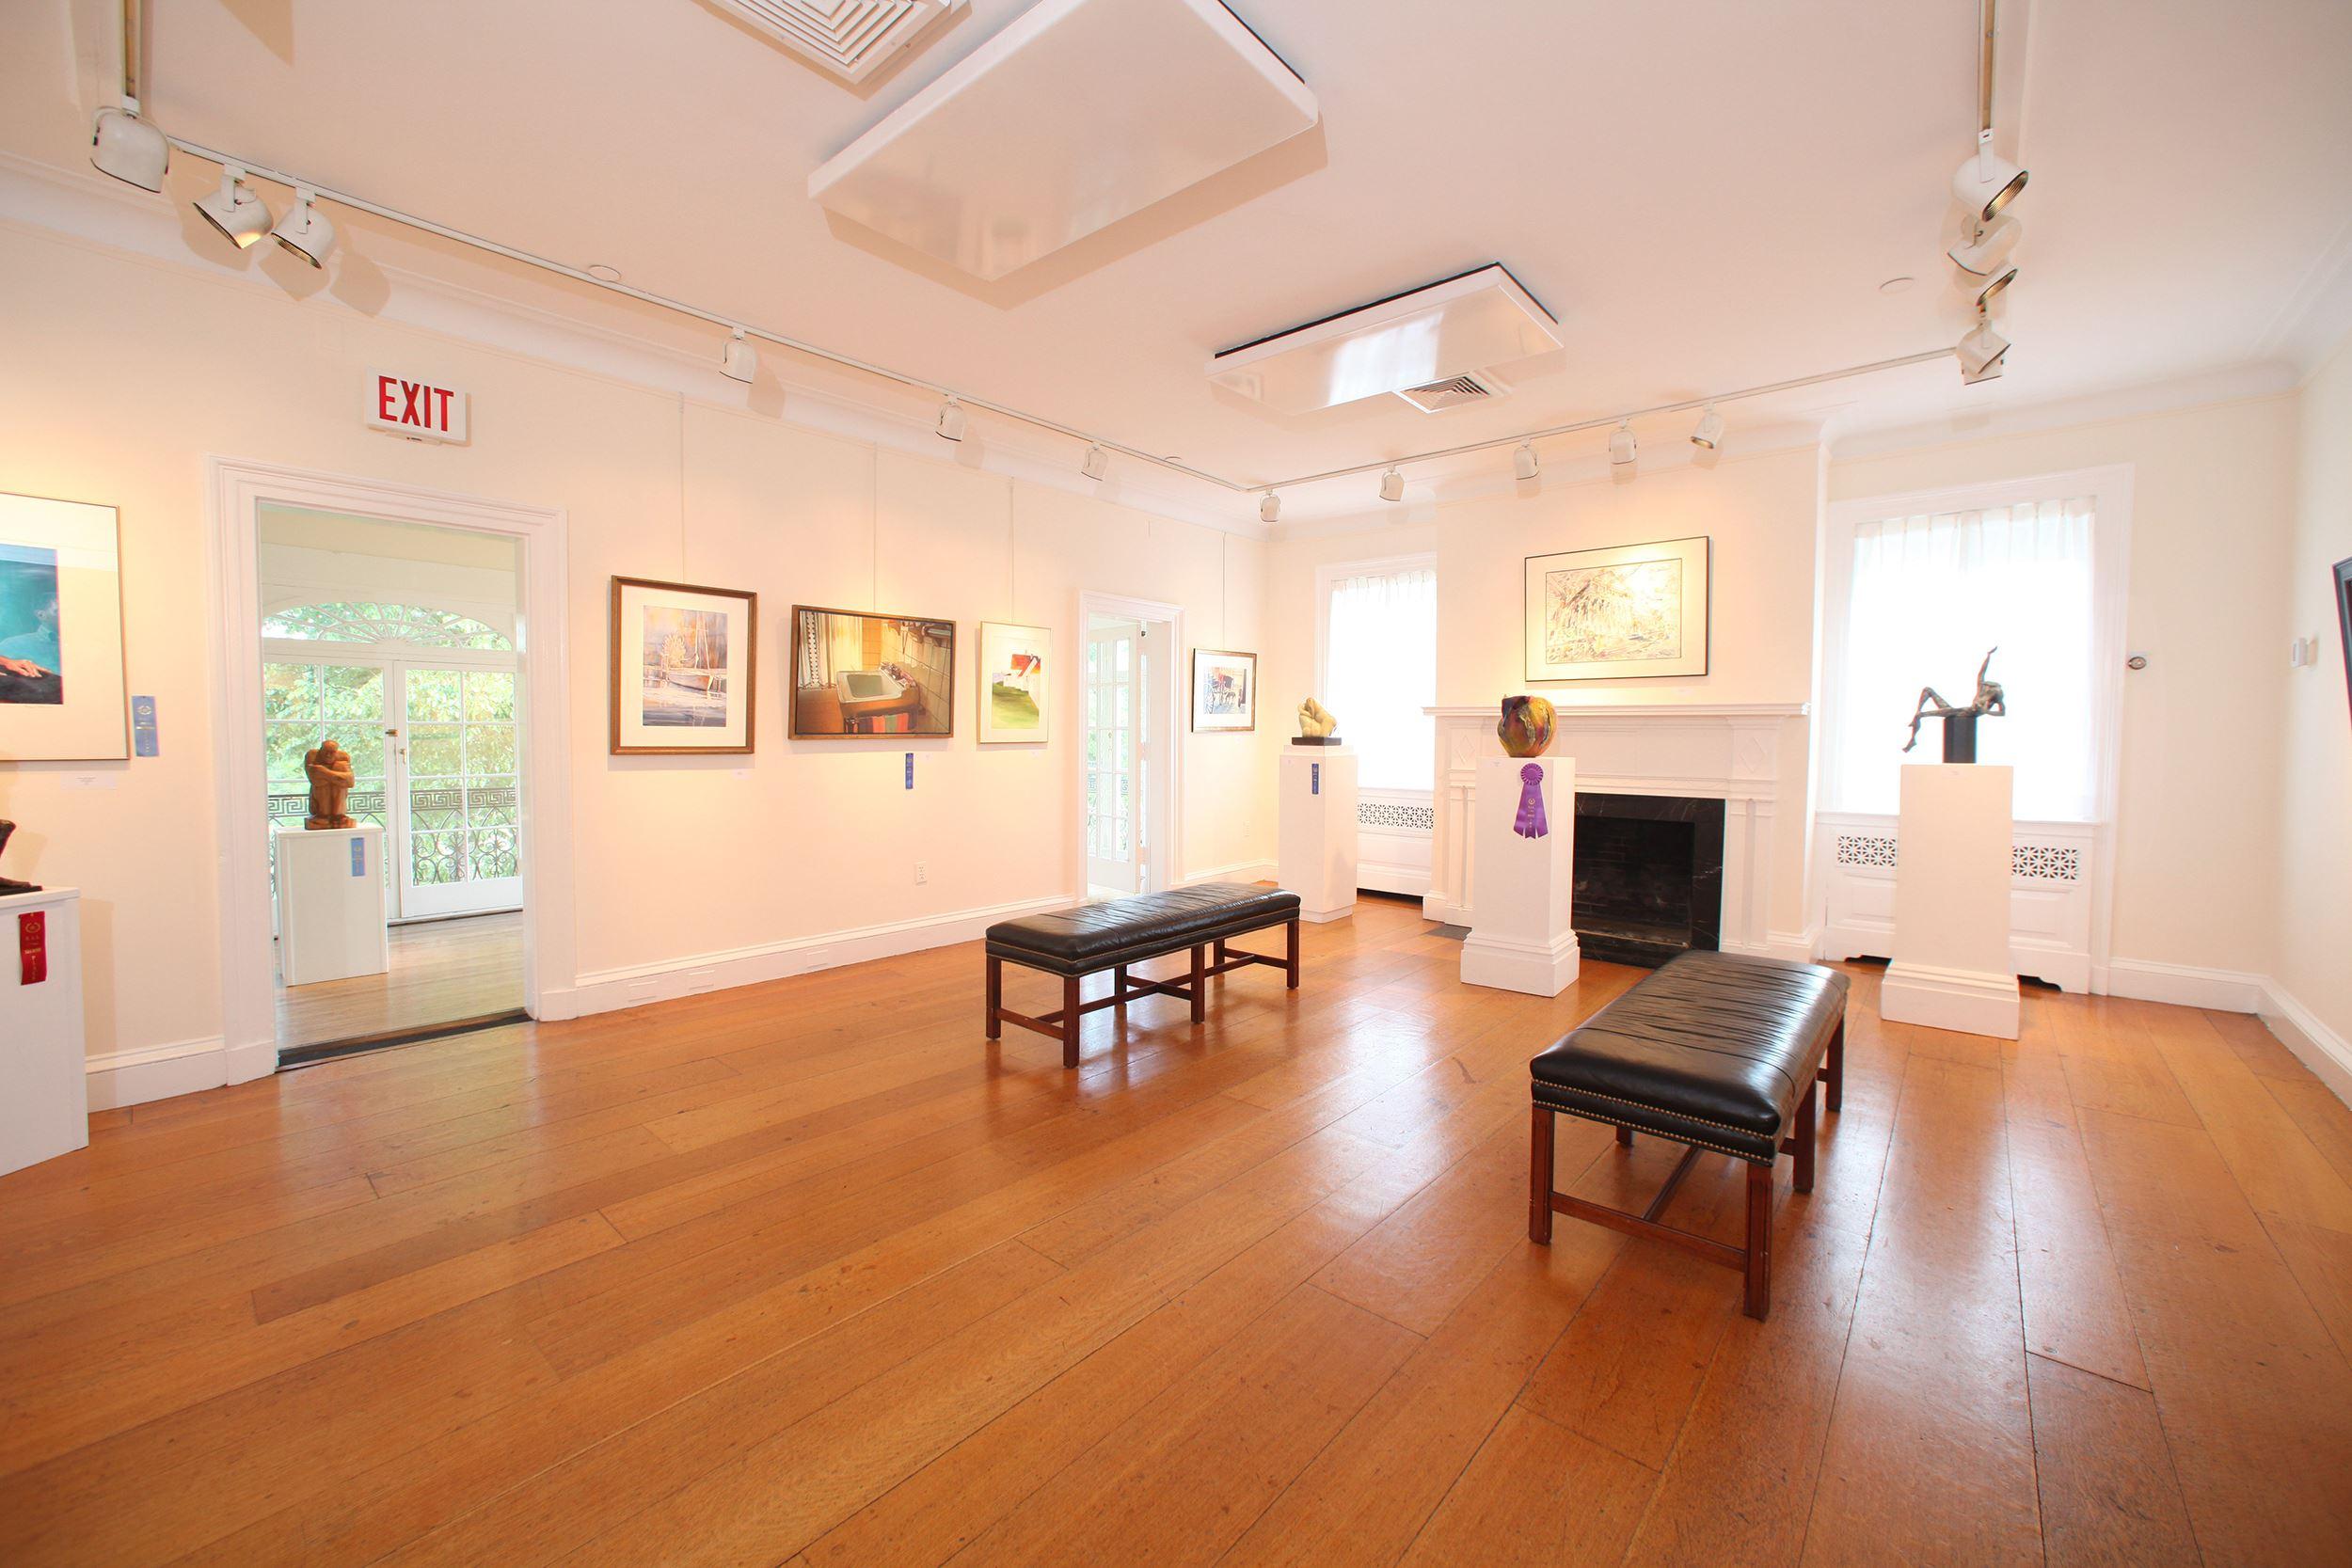 Art Gallery at Glenview Mansion